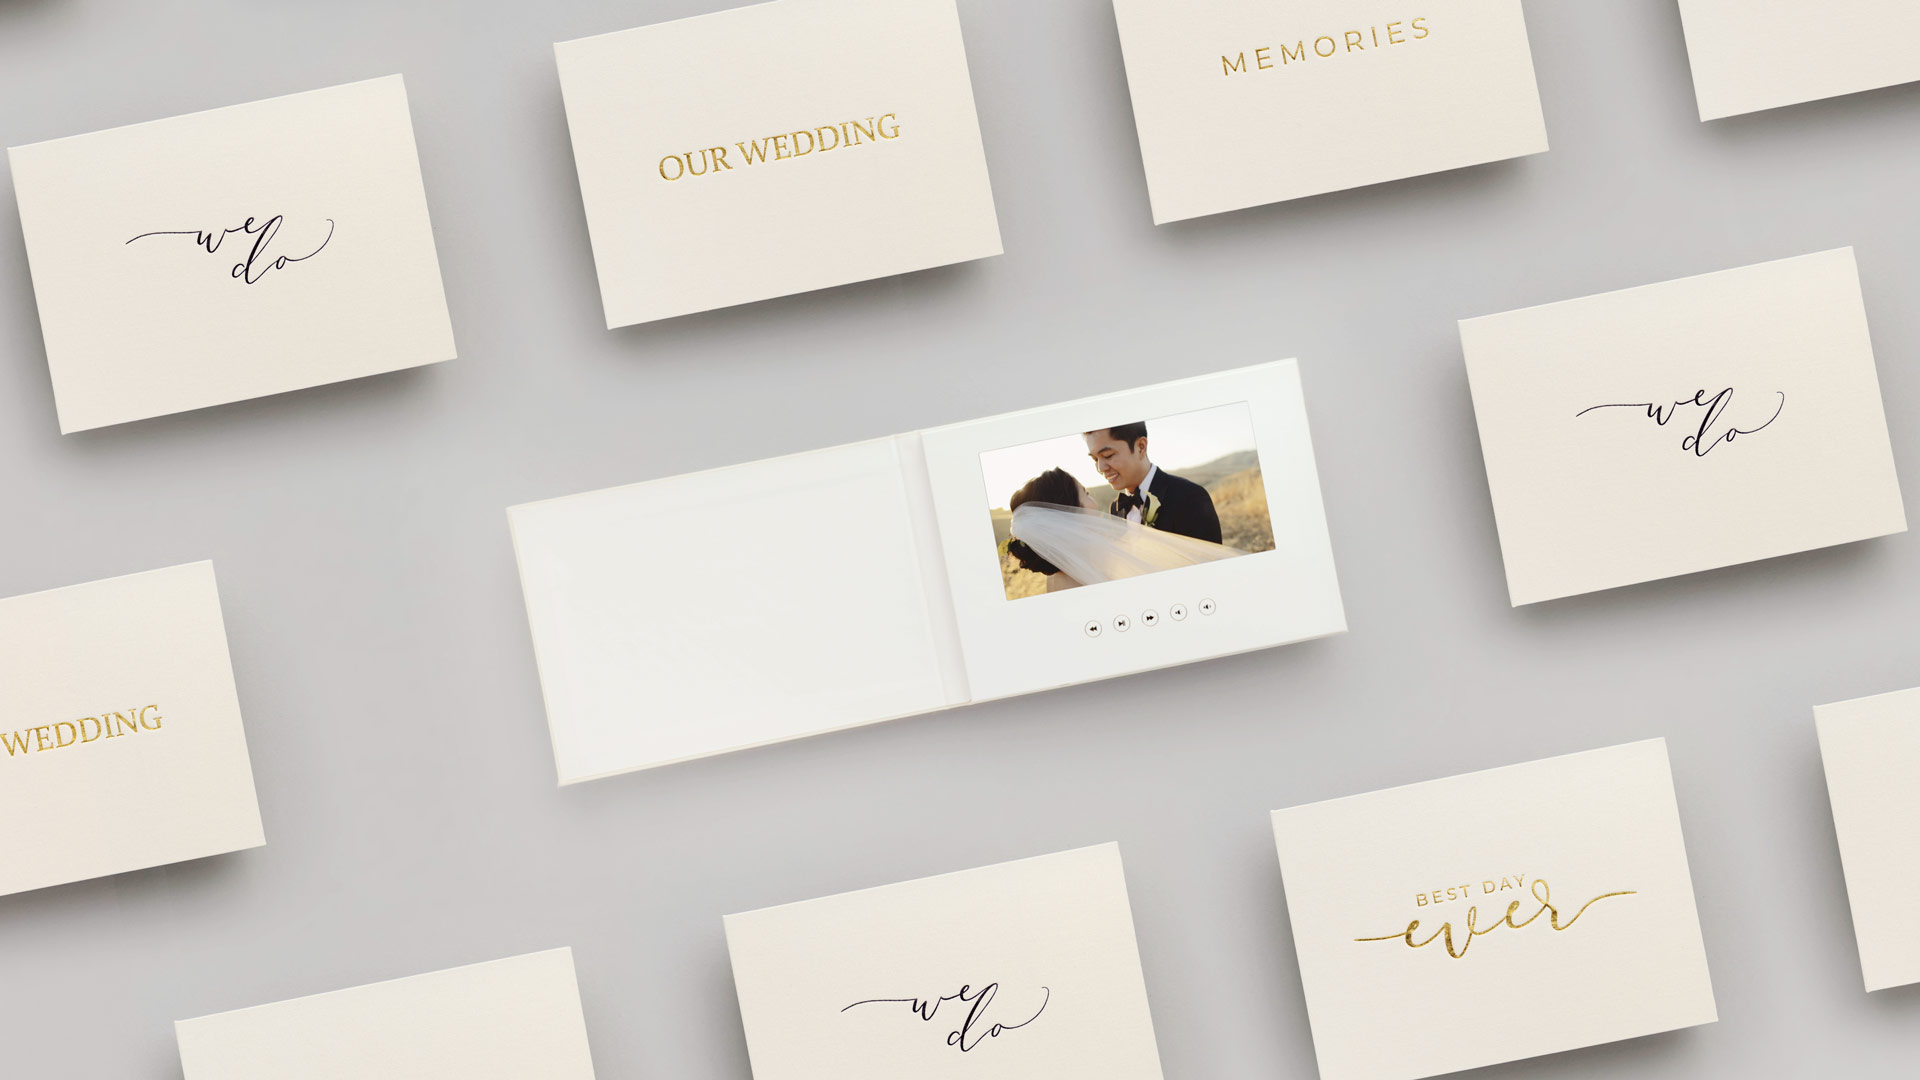 A new and revolutionary way to enjoy your wedding video - The Motion Books Video Books